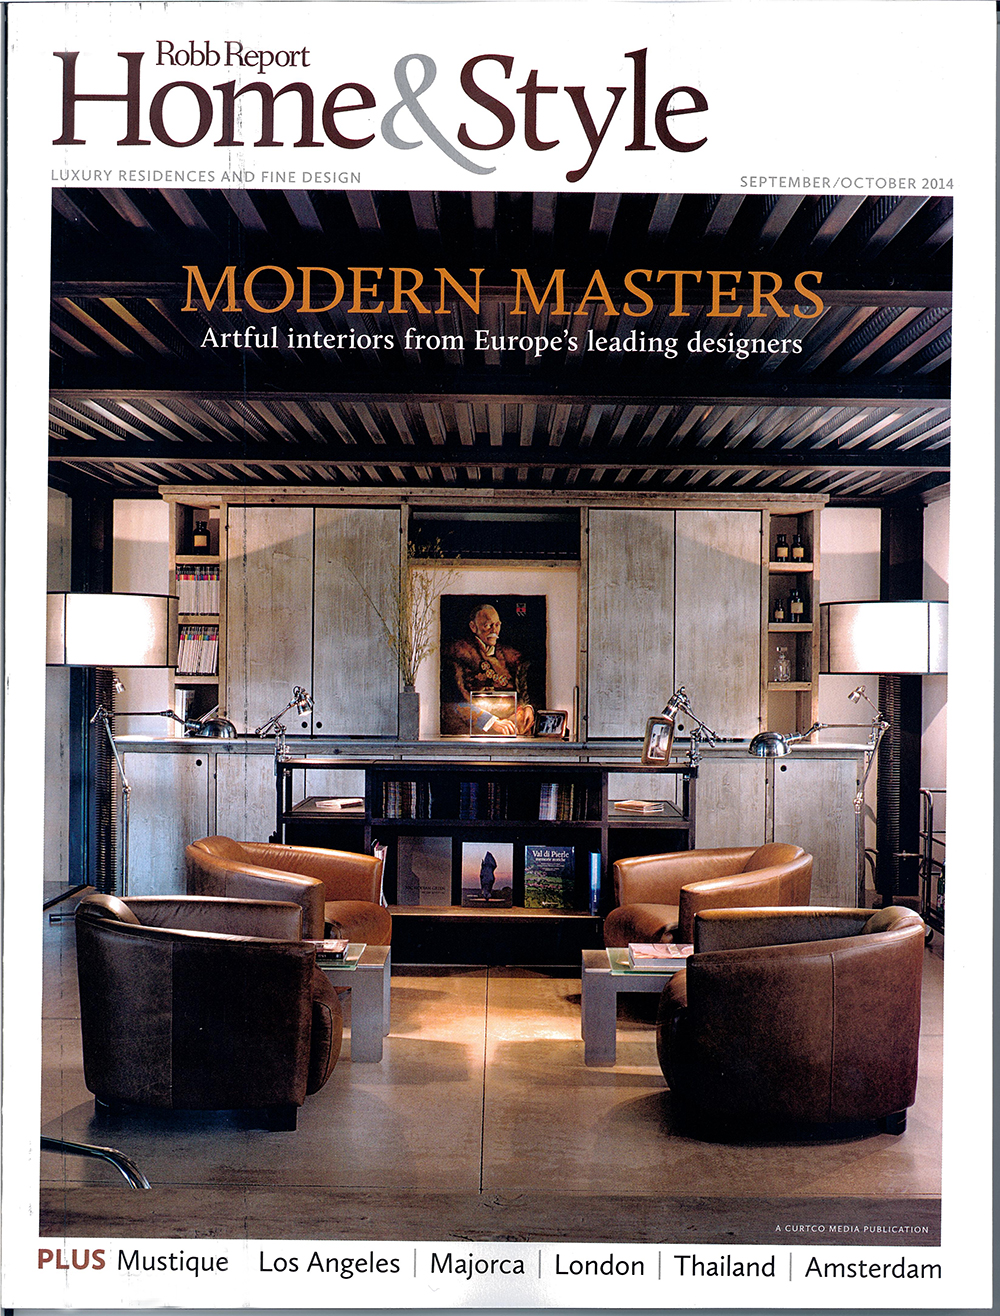 Robb Report Home & Style